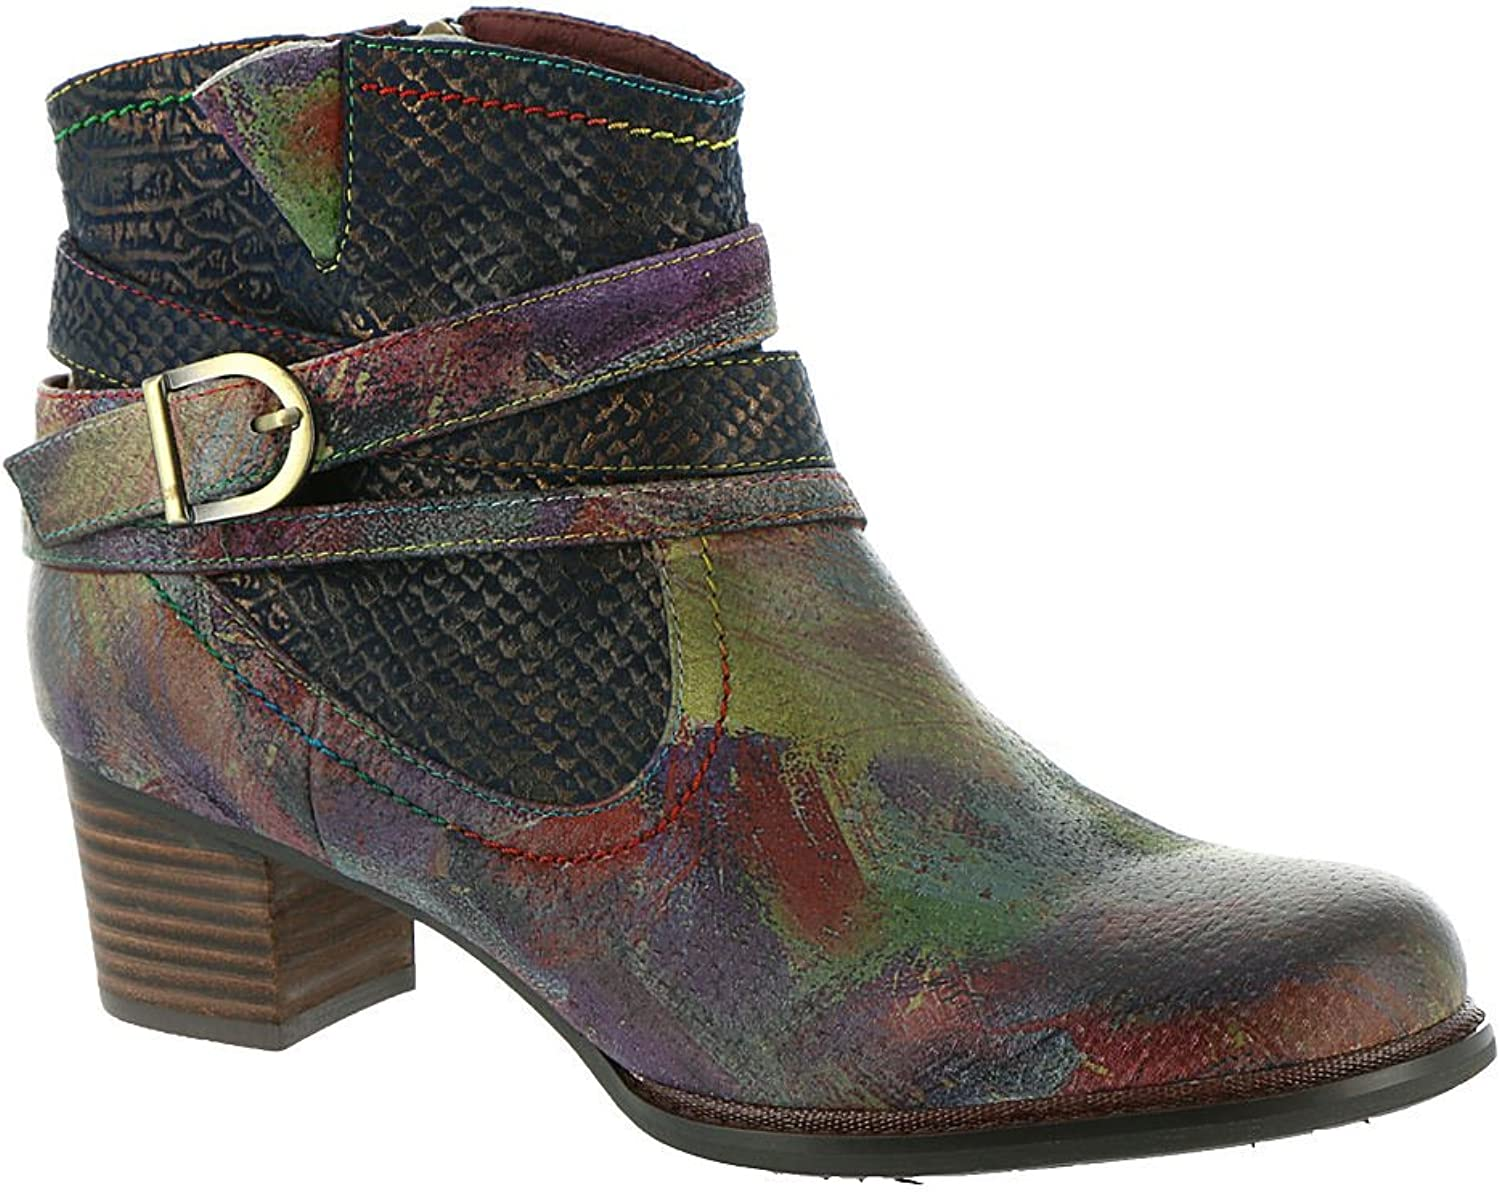 Women's L'Artiste by Spring Step, Shazzam Ankle Boots NAVY MULTI 3.8 M